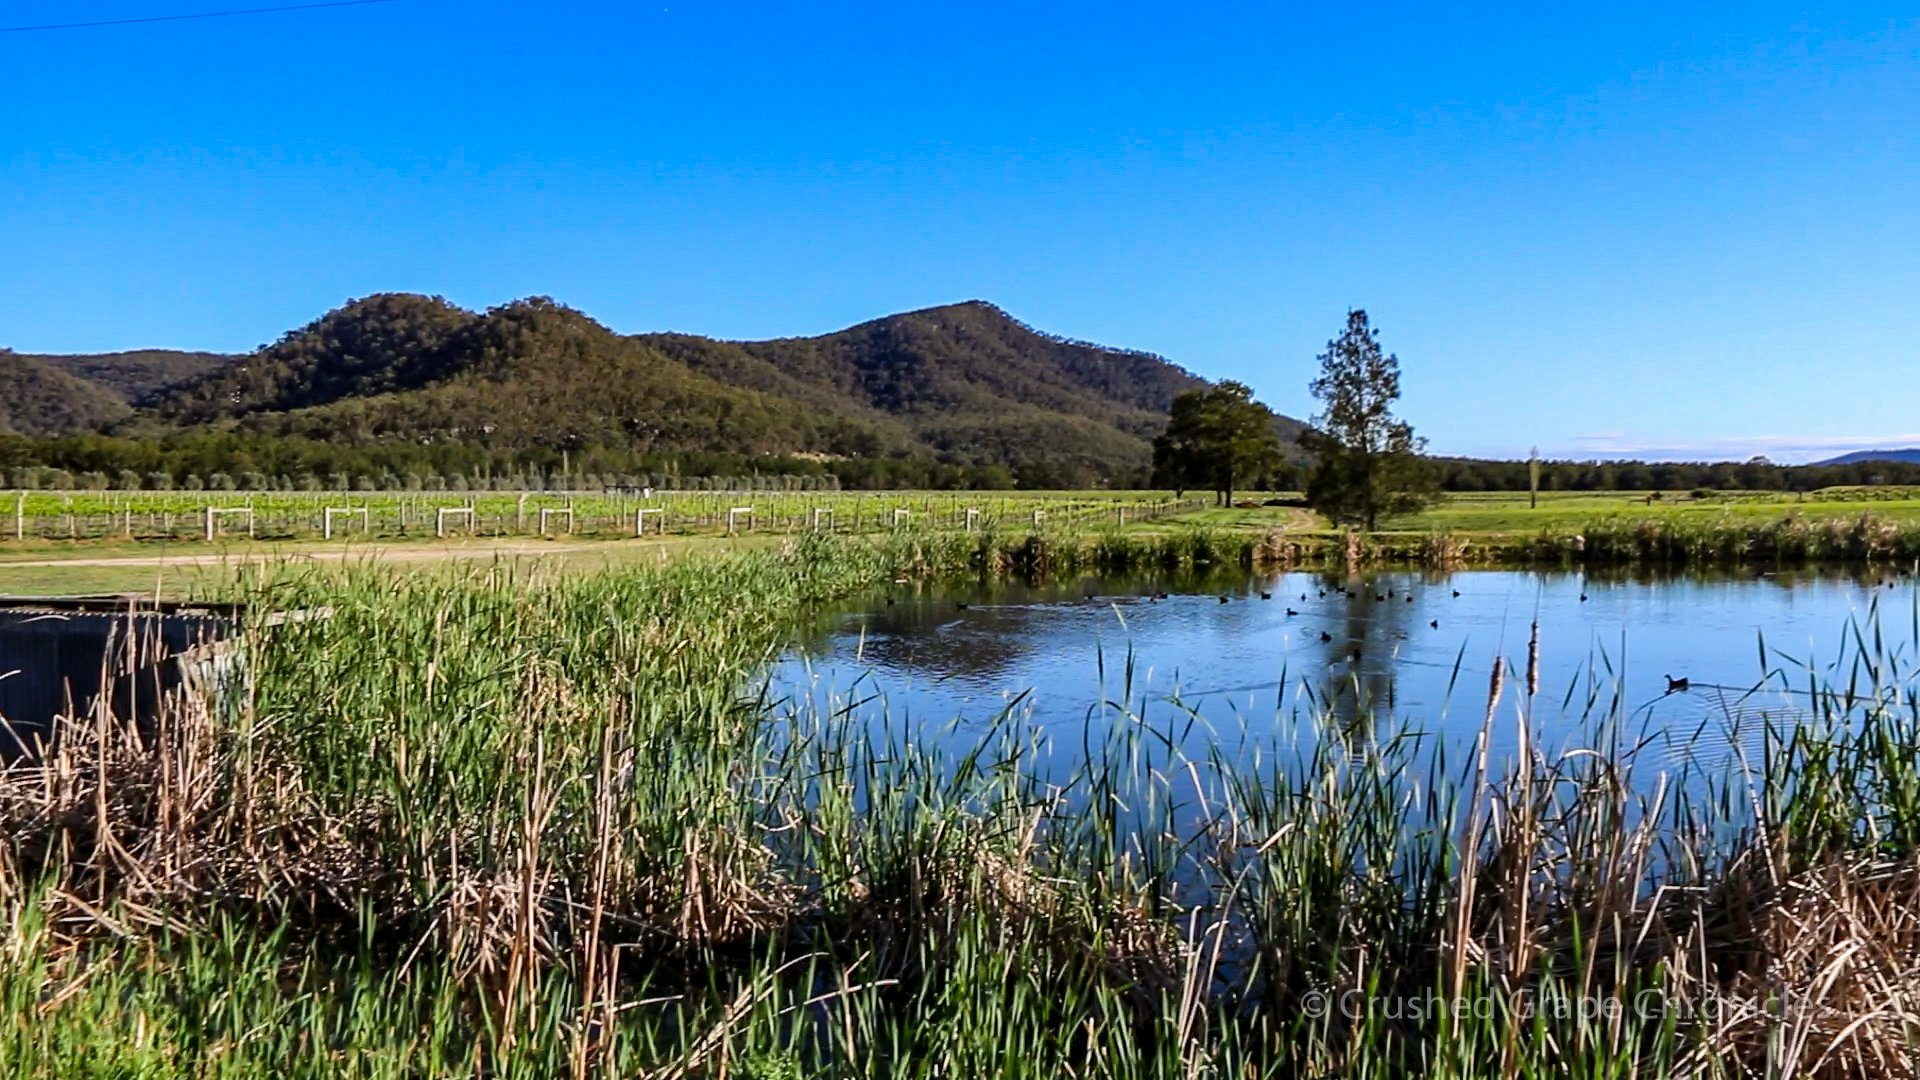 The pond for irrigation at Krinklewood NSW Australia